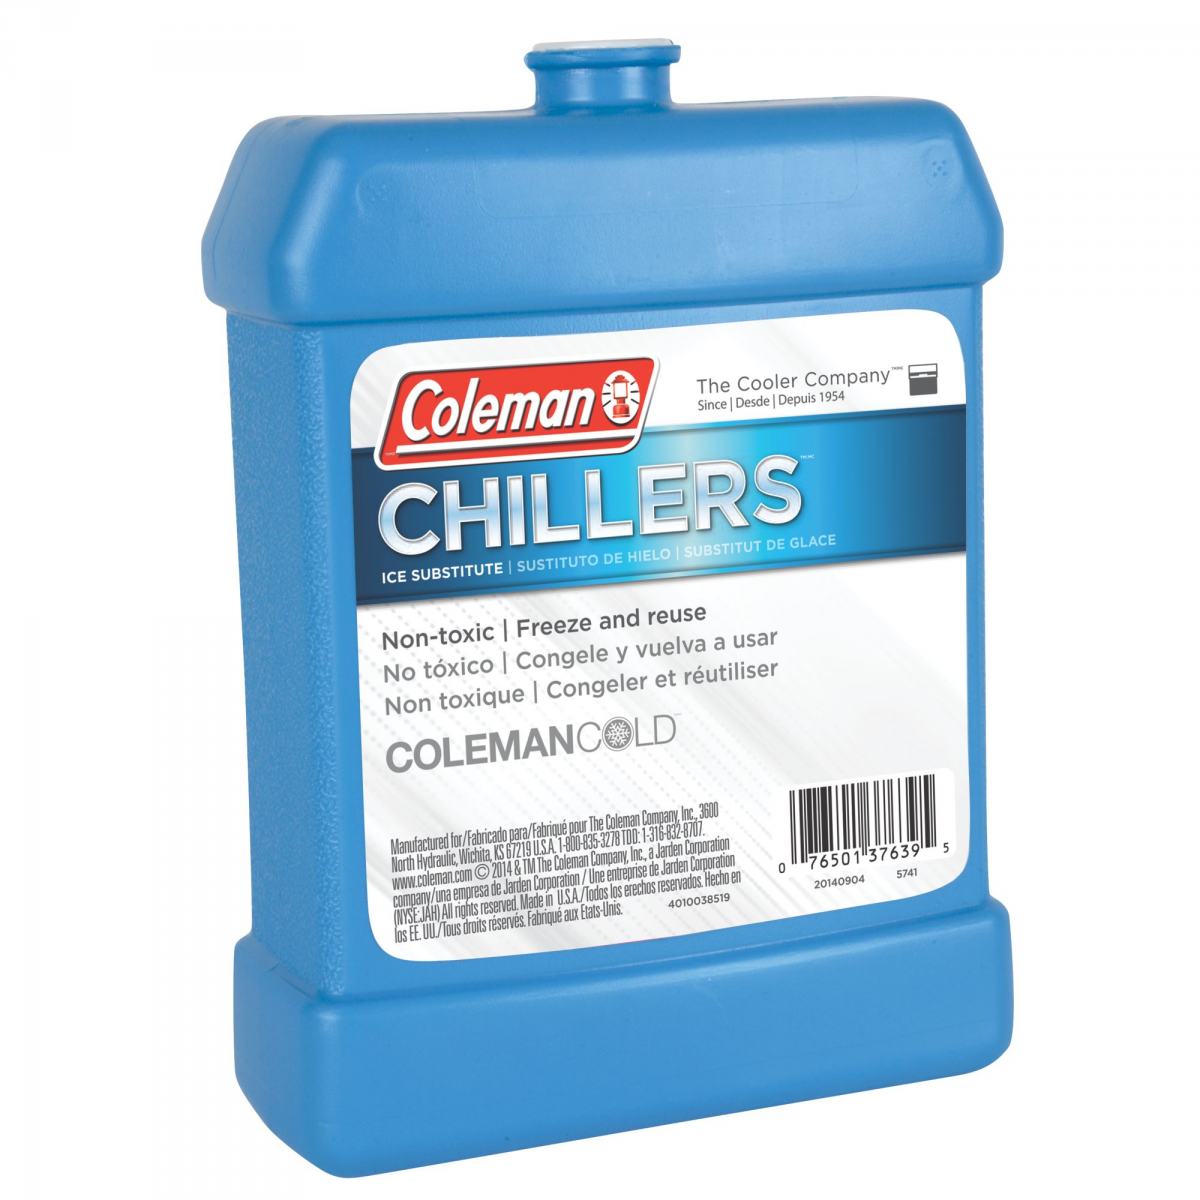 Coleman Chiller Hielo Artificial